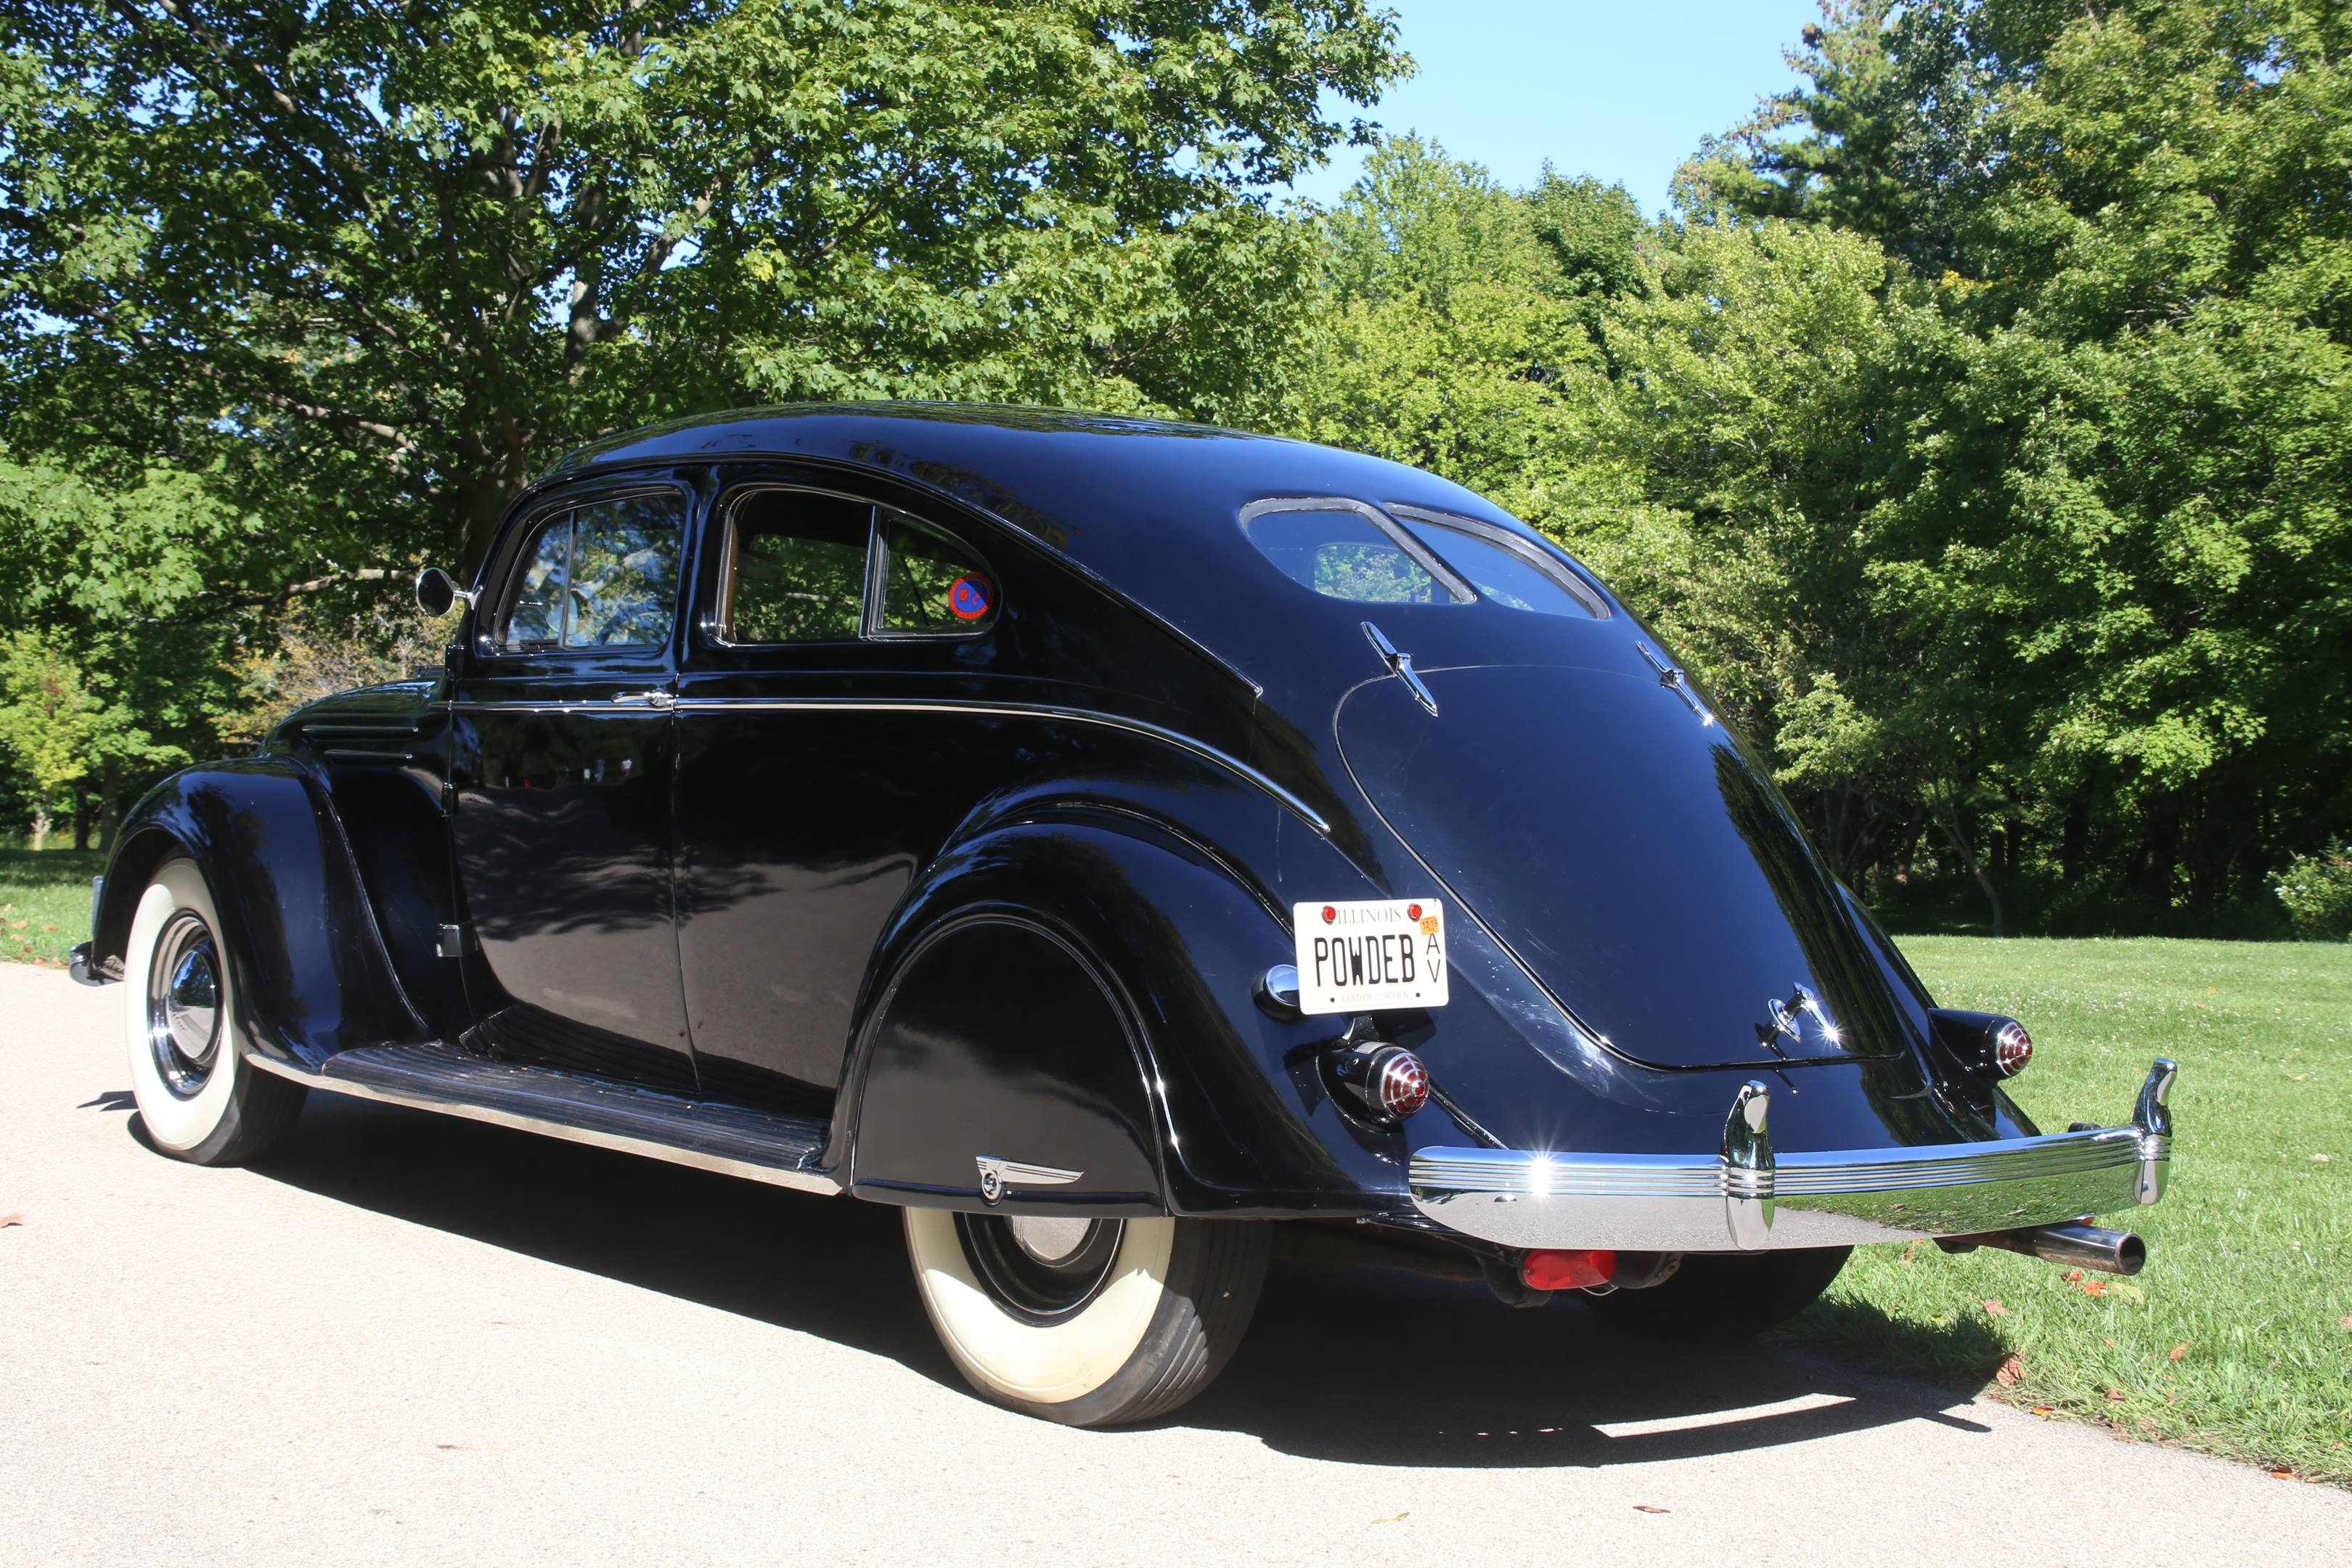 1937 Chrysler Imperial Airflow coupe